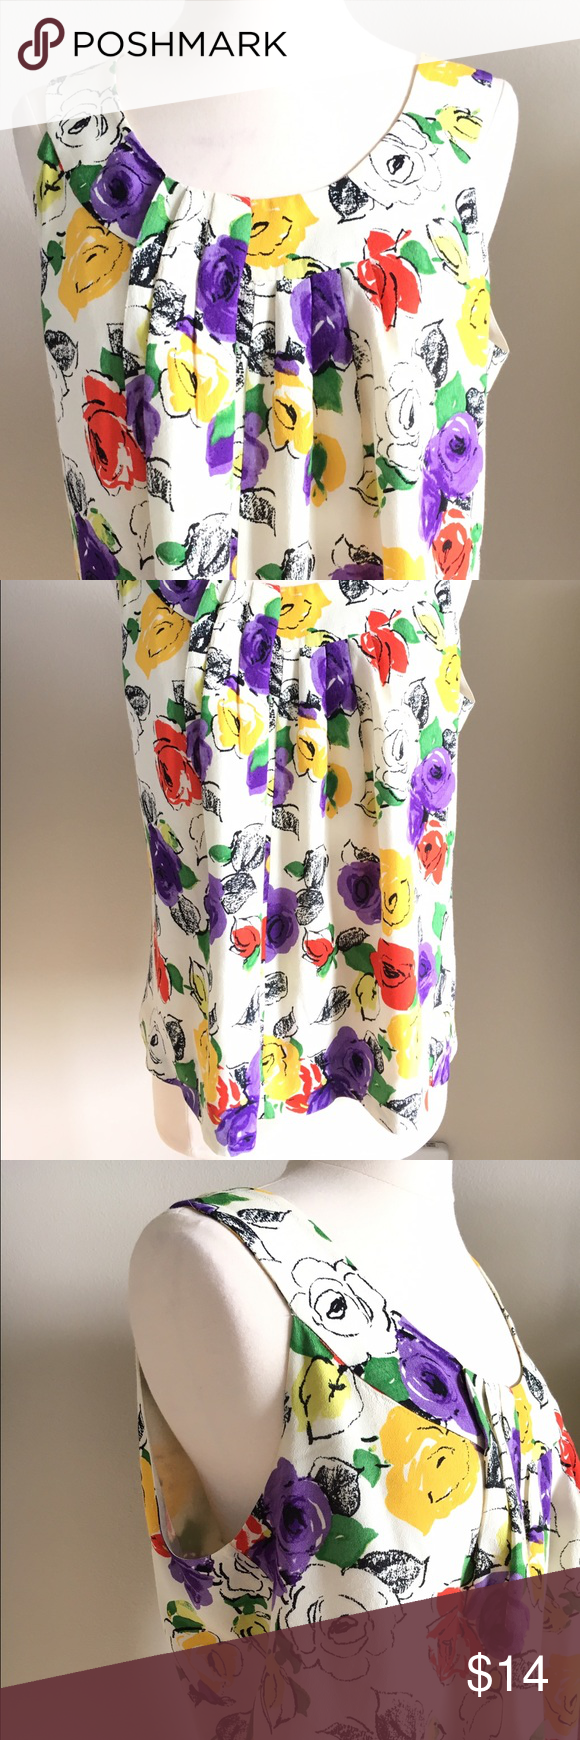 "kate spade live colorfully floral painted blouse Floral brush print. Sleeveless. Pair with your fav cardi. Beautiful yellows, purple and green colors. Gently used. No holes, tears or snags. Material: viracose; lining: poly;  measurements laying flat: 19.5"" armpit to armpit. Price is firm kate spade Tops"